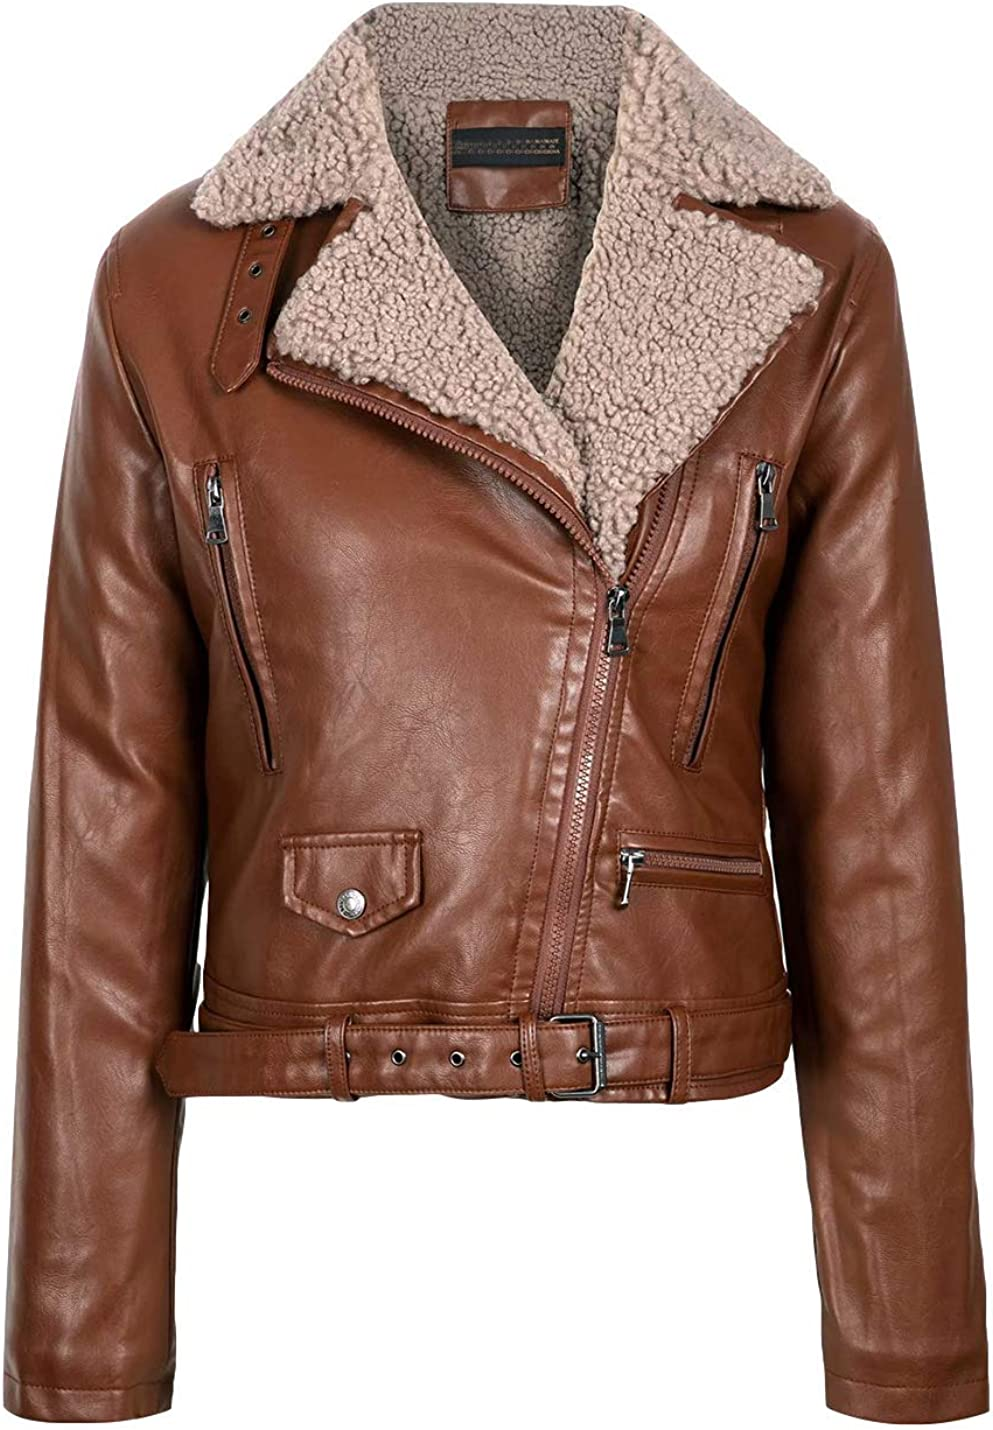 PUWEI Women's Faux Leather Sherpa Lined Zip Up Long Sleeve Belted Motorcycle Jacket